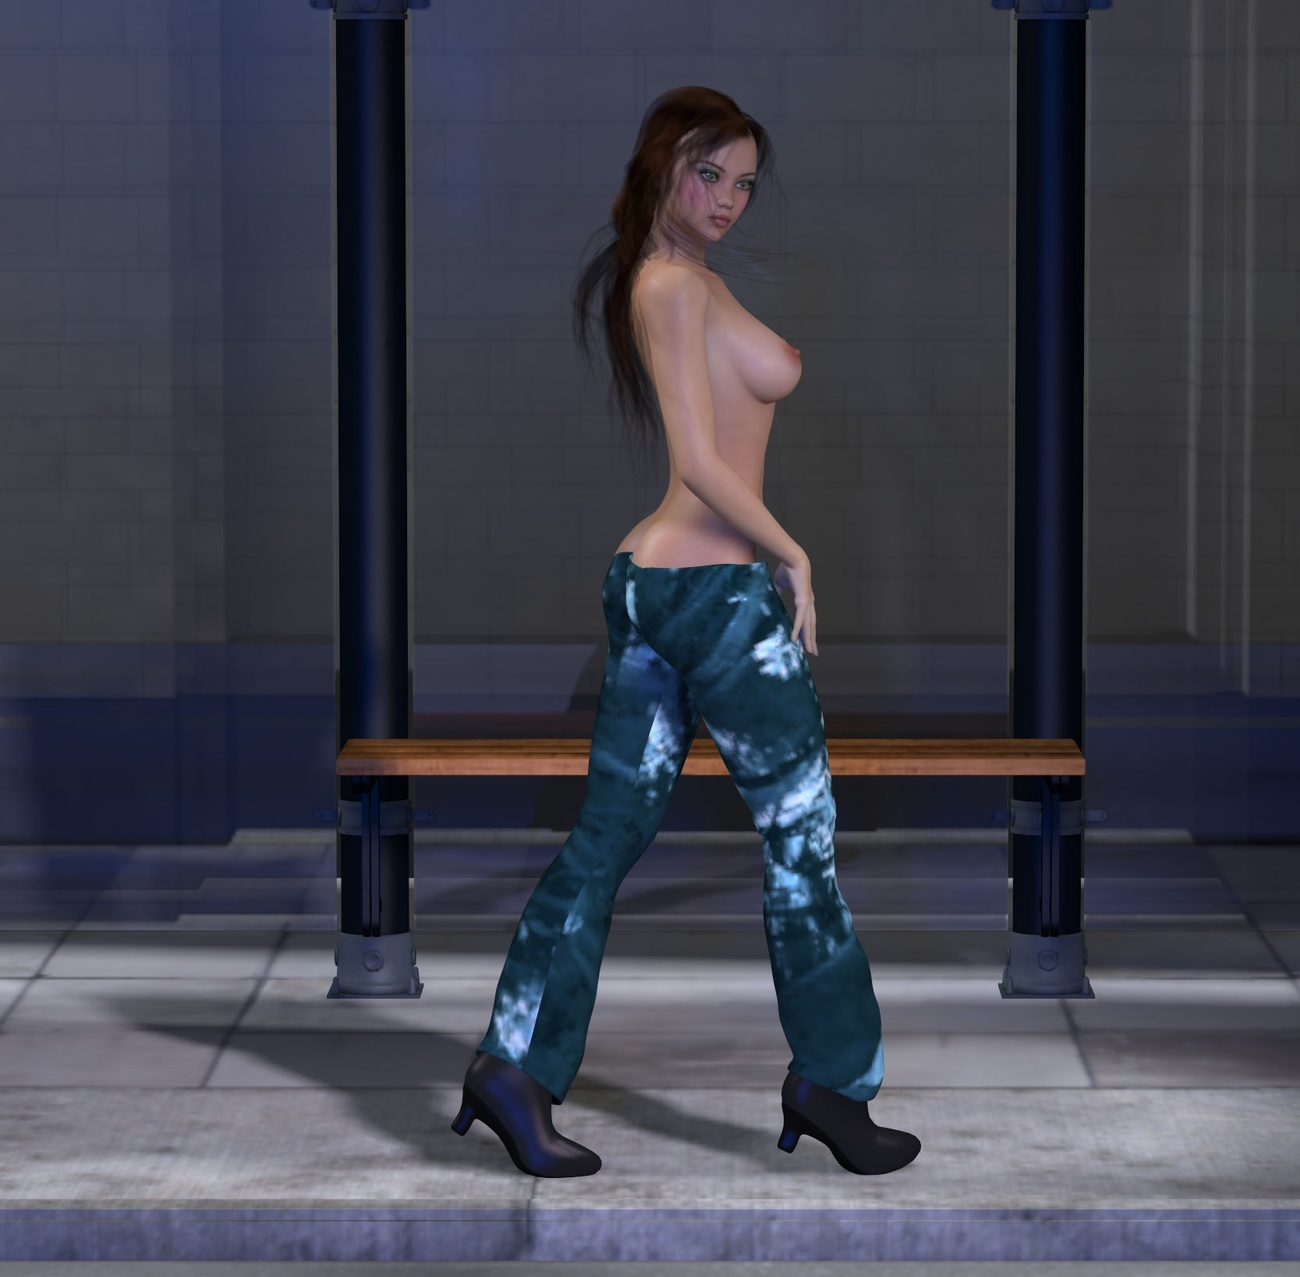 Walking Naked Down The Street 36